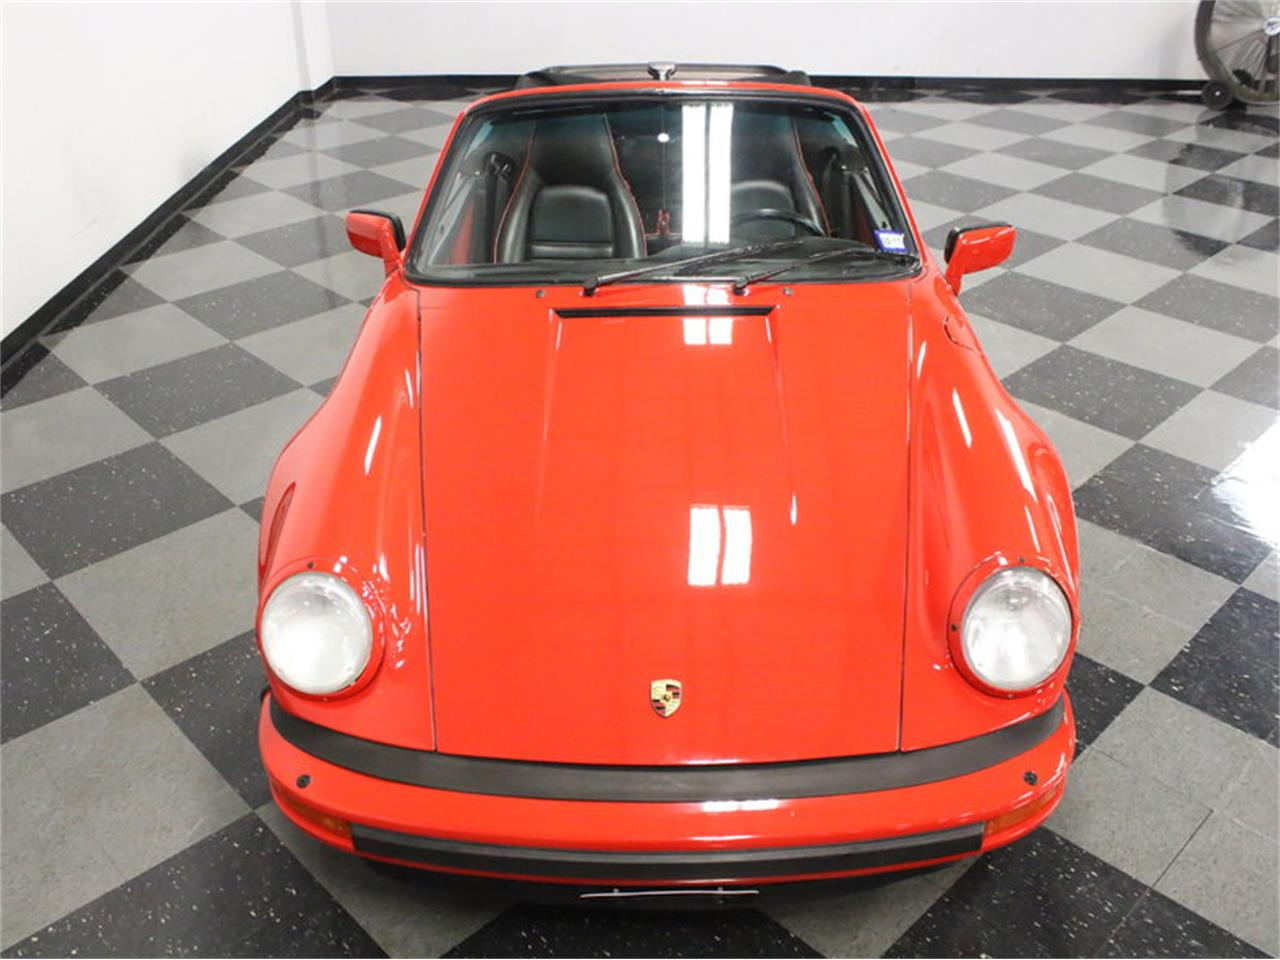 Large Picture of 1988 911 located in Texas Offered by Streetside Classics - Dallas / Fort Worth - LBK3